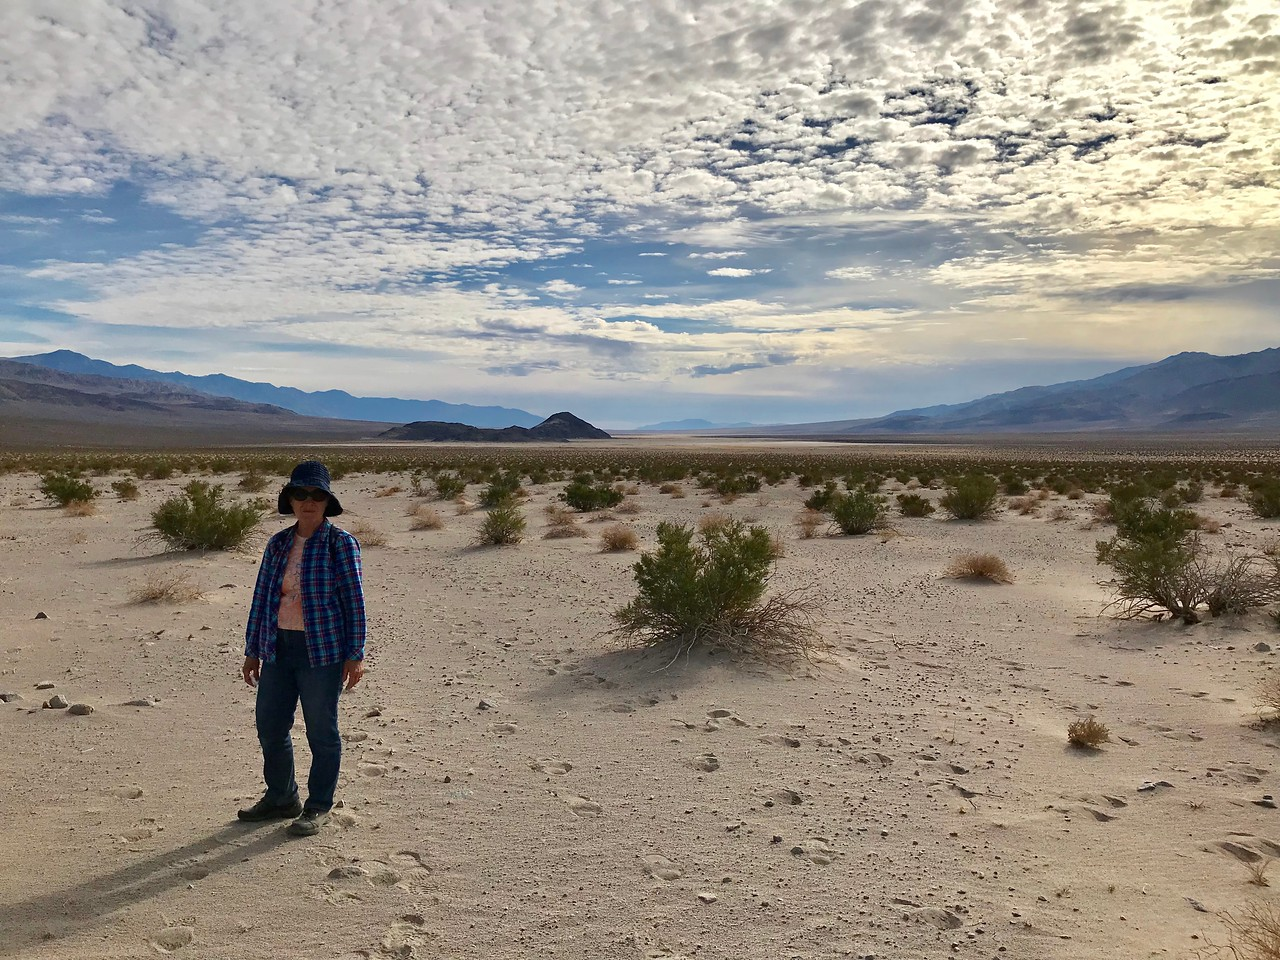 2018-01-03 - Photo 07 - Death Valley - Rosemarie Sills Oliver (b  1951)